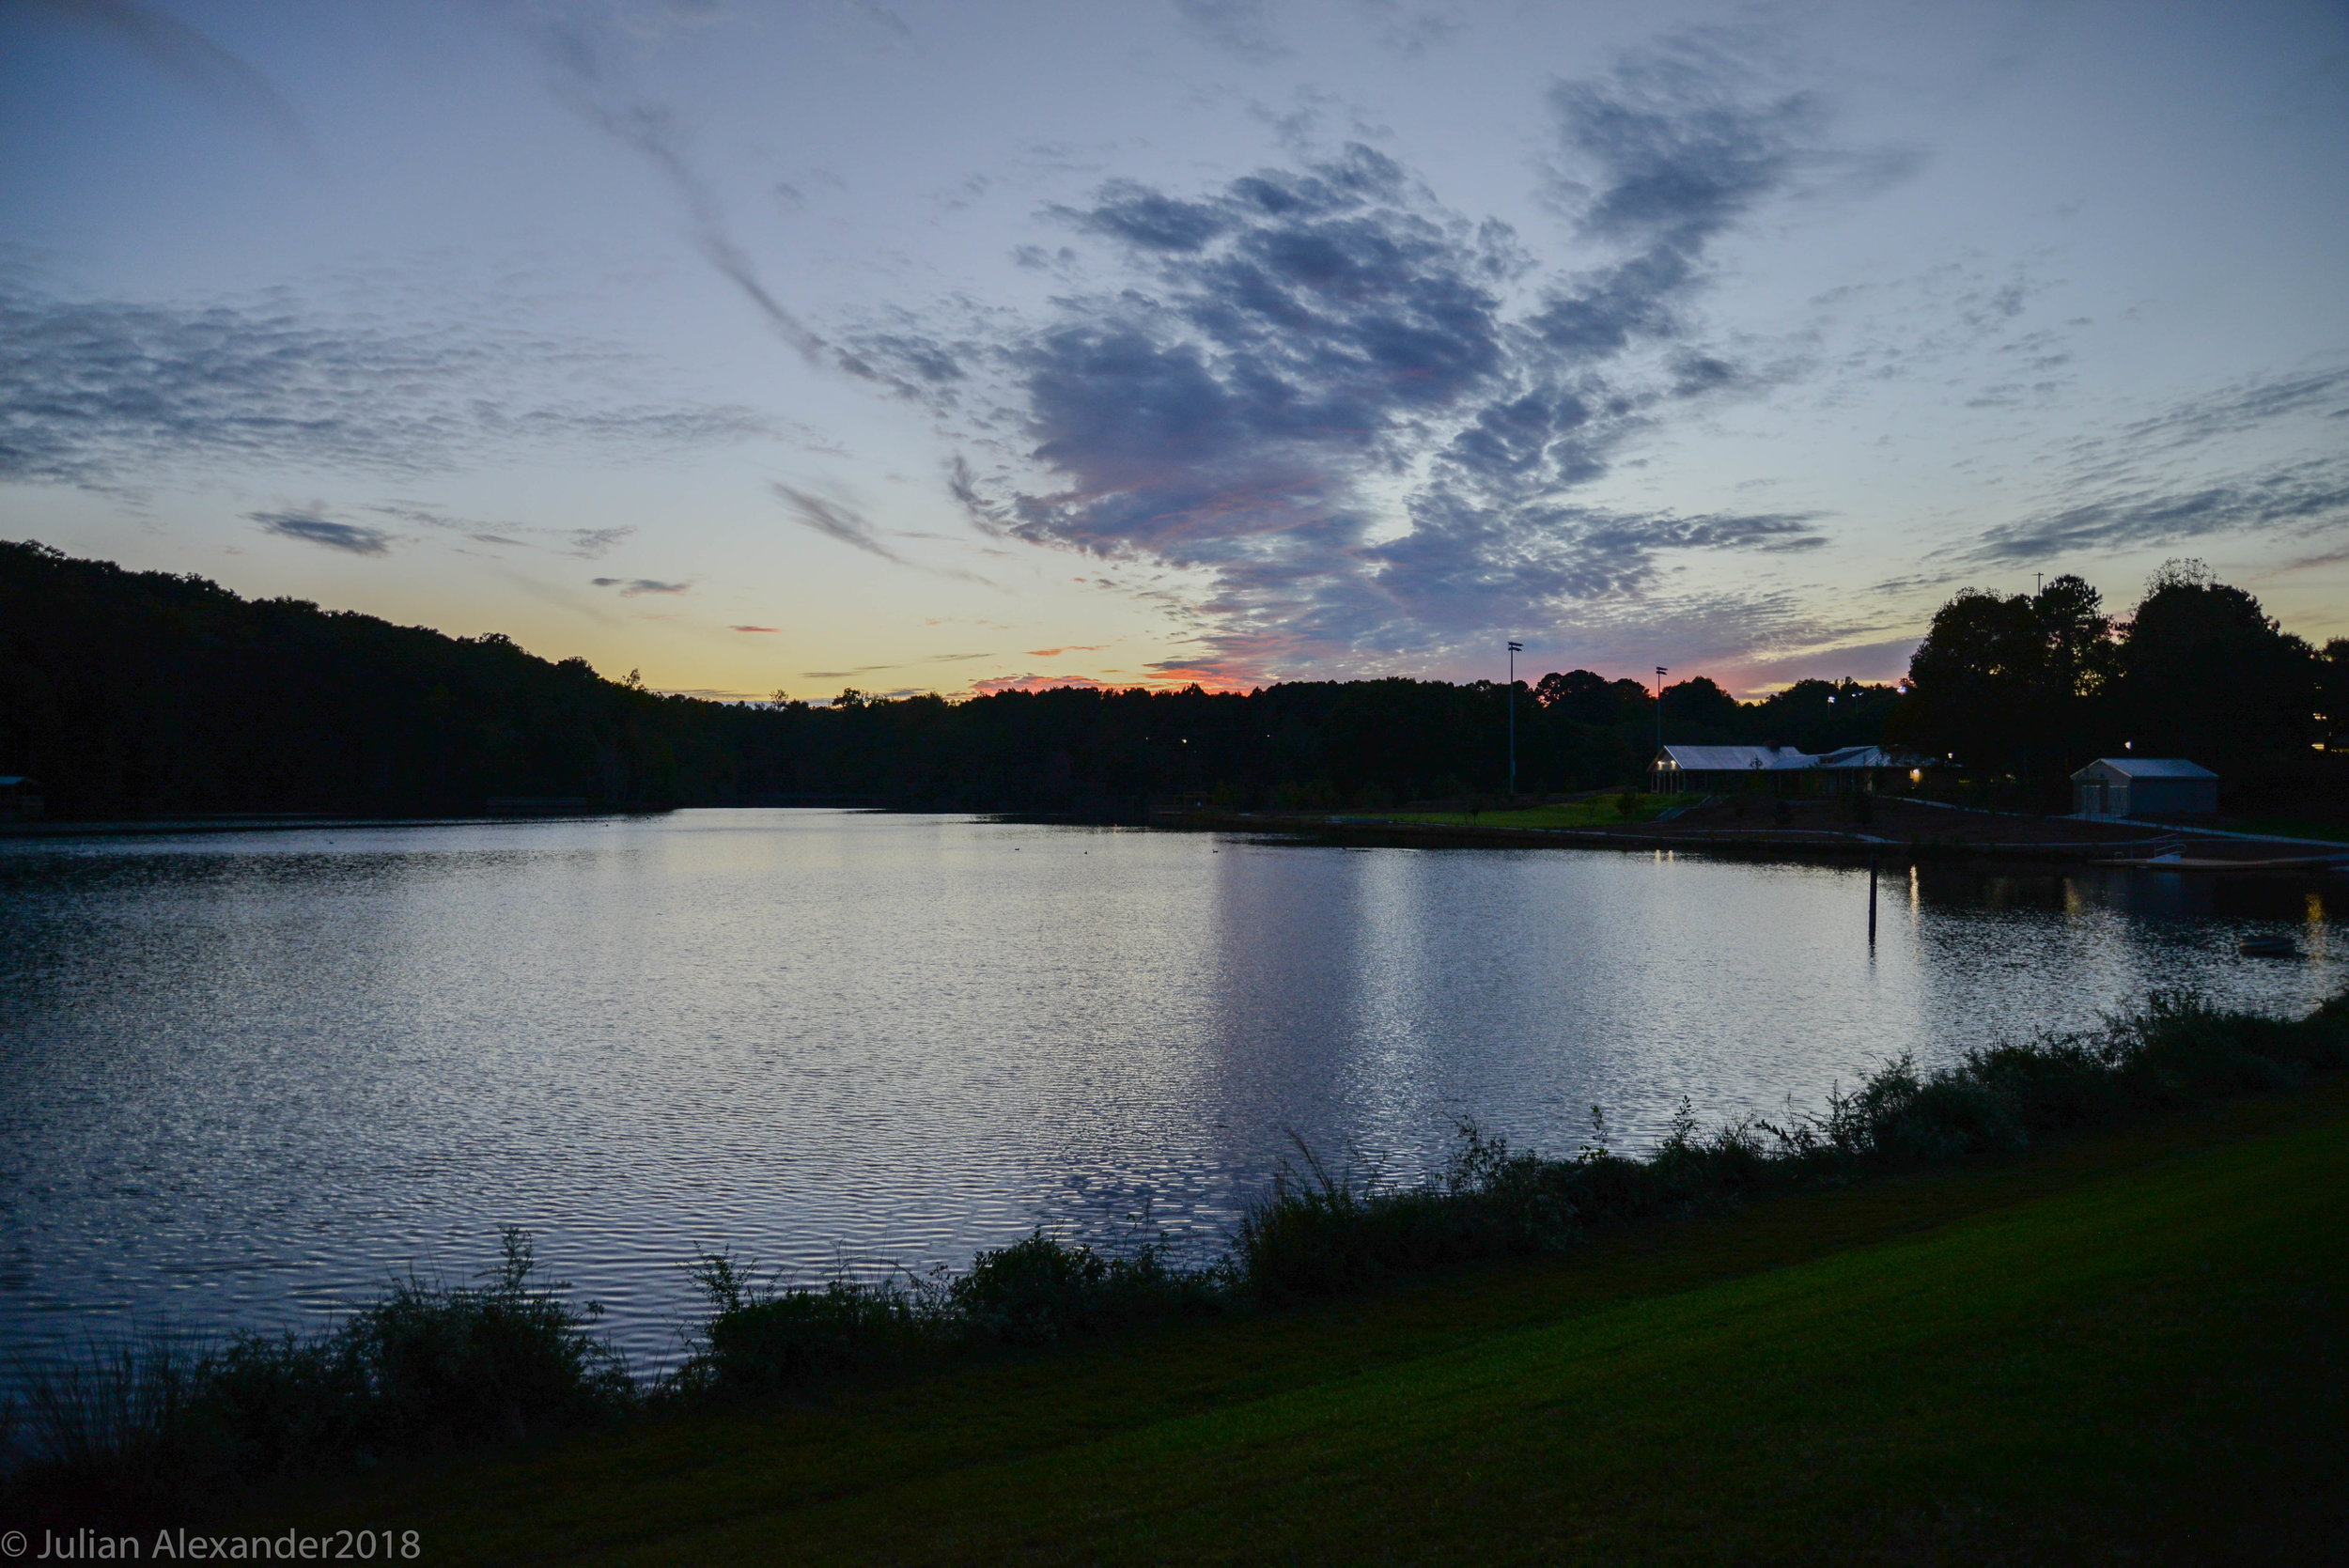 Lake Herrick as seen at dusk on Oct. 17, 2018 in Athens, Georgia. Lake Herrick is part of the University of Georgia intramural fields complex. (Photo/Julian Alexander)